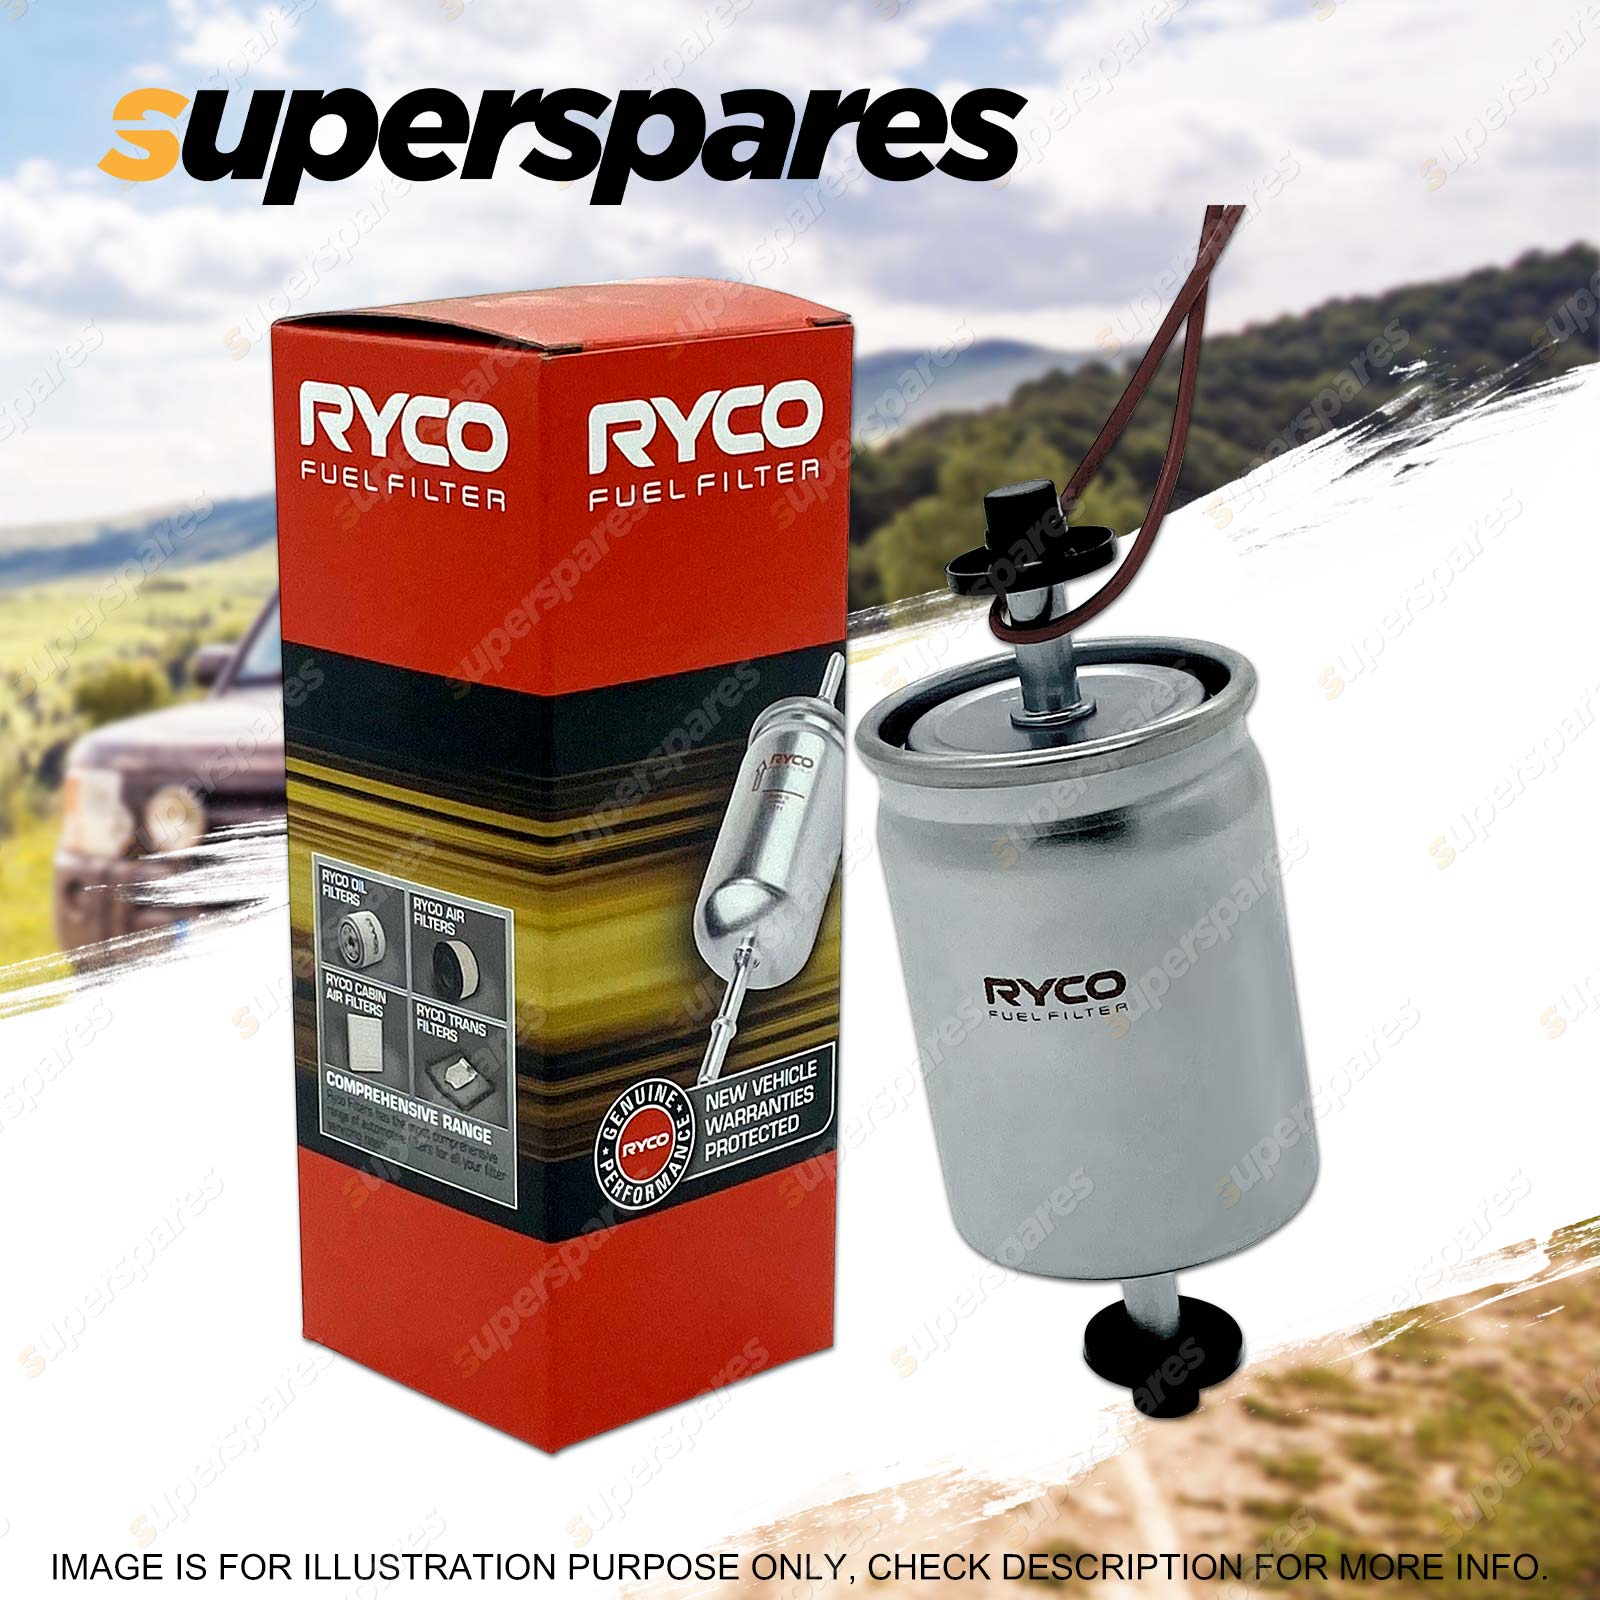 Ryco Fuel Filter For Toyota Yaris Ncp90r Ncp91r Ncp93r Petrol Incl Mercedes Benz 1998 C4 3 Sku